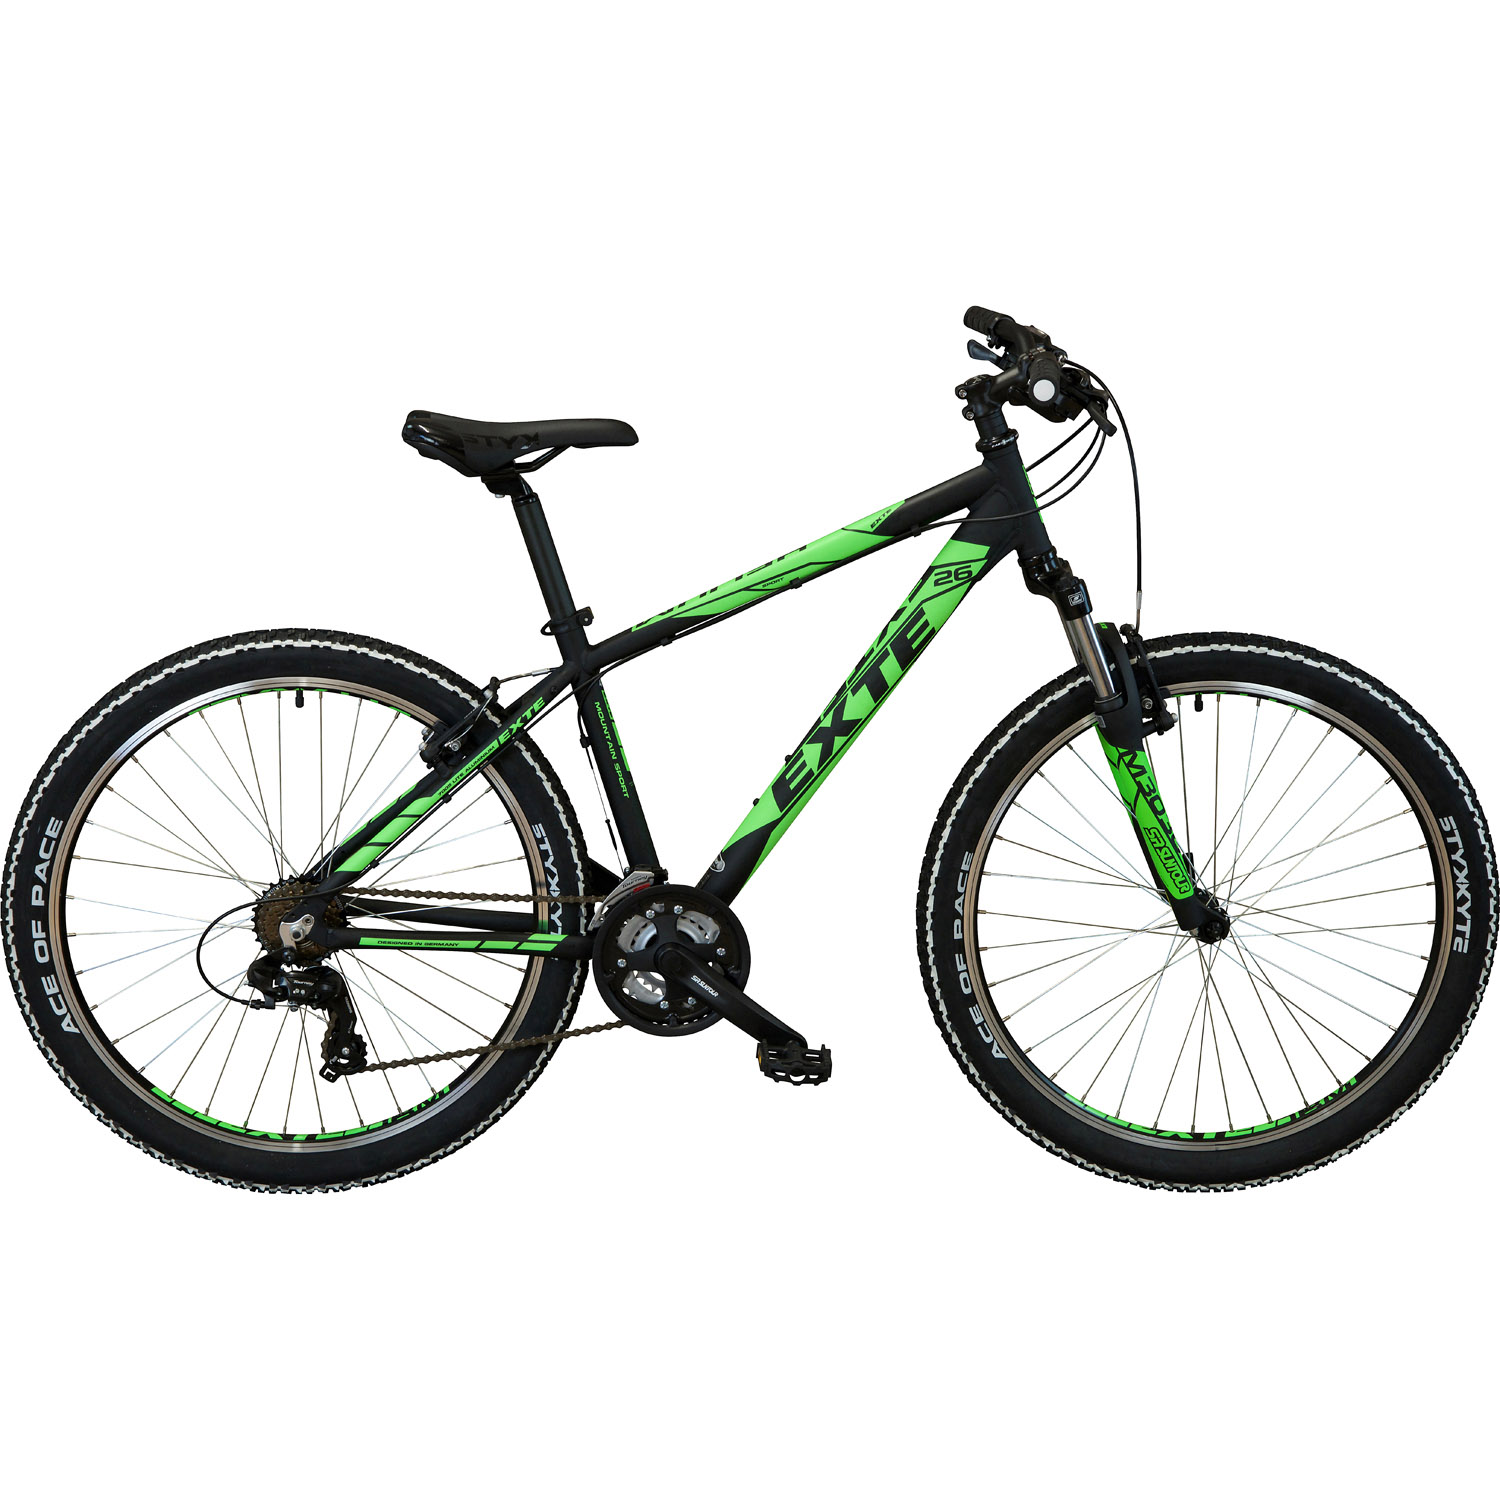 exte helium mountainbike 26 zoll schwarz neongelb 41 cm. Black Bedroom Furniture Sets. Home Design Ideas